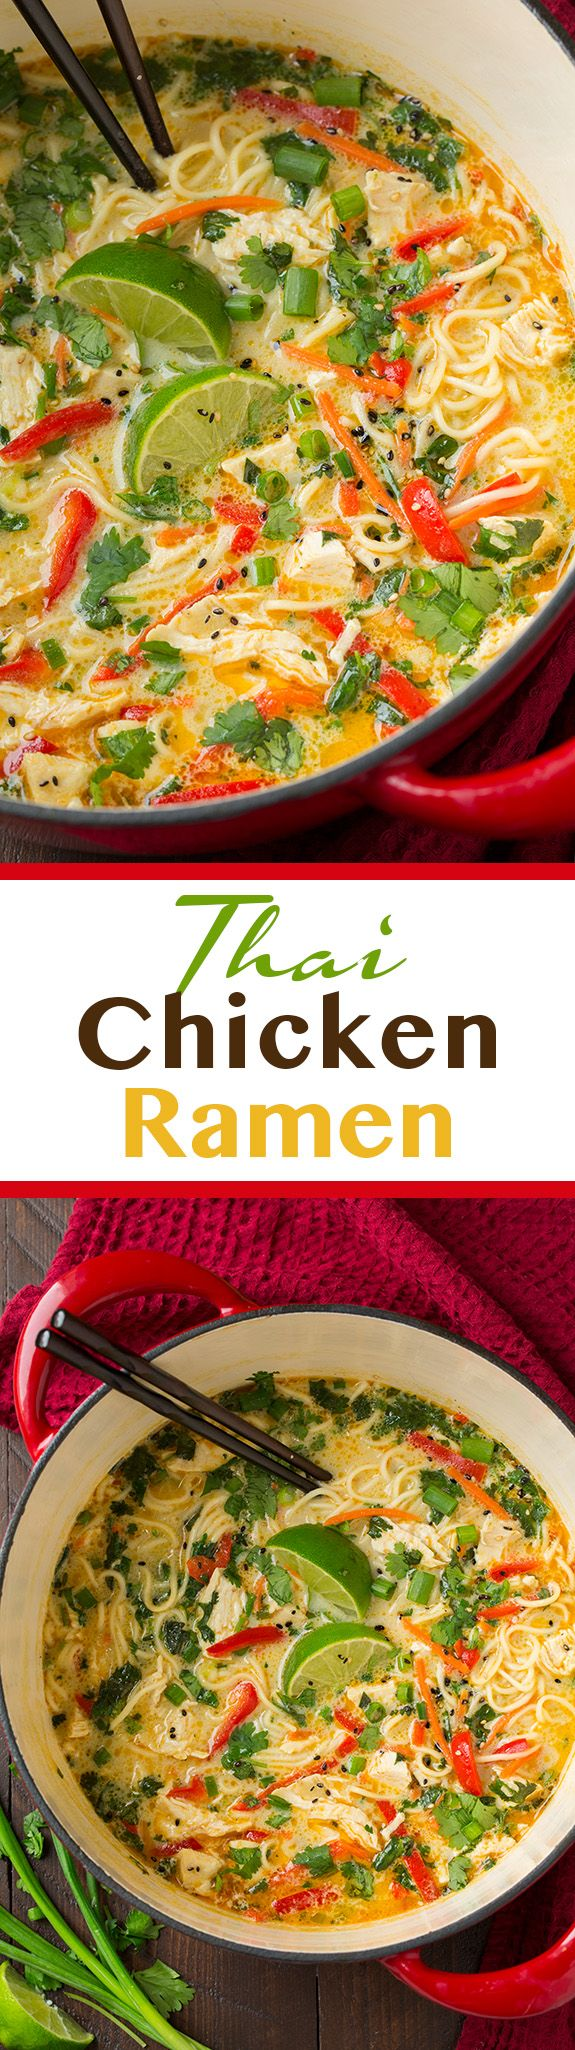 Thai Chicken Ramen – this soup features many layers of flavors, including onion, g